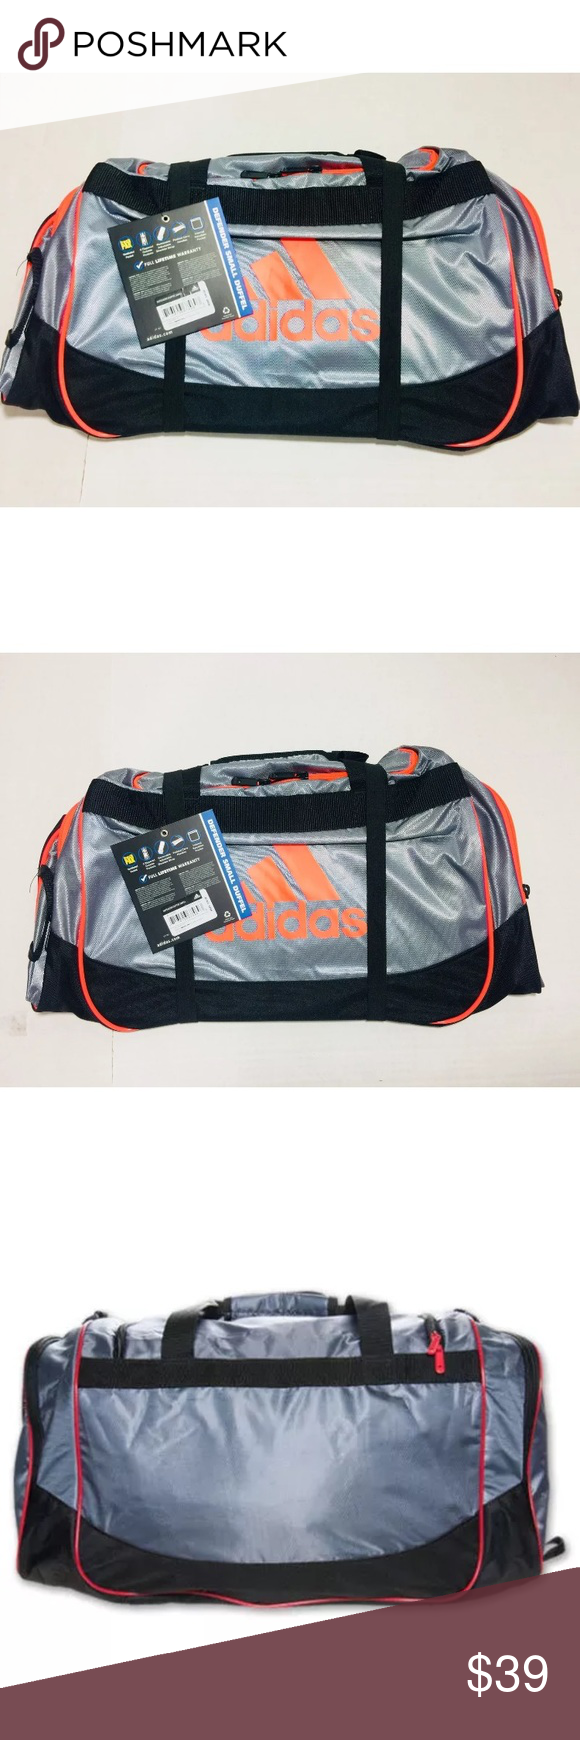 ee1f9a0361a3 NEW ADIDAS DEFENDER DUFFEL GYM BAG LEAD SCARLET 100% AUTHENTIC ADIDAS  MERCHANDISE!